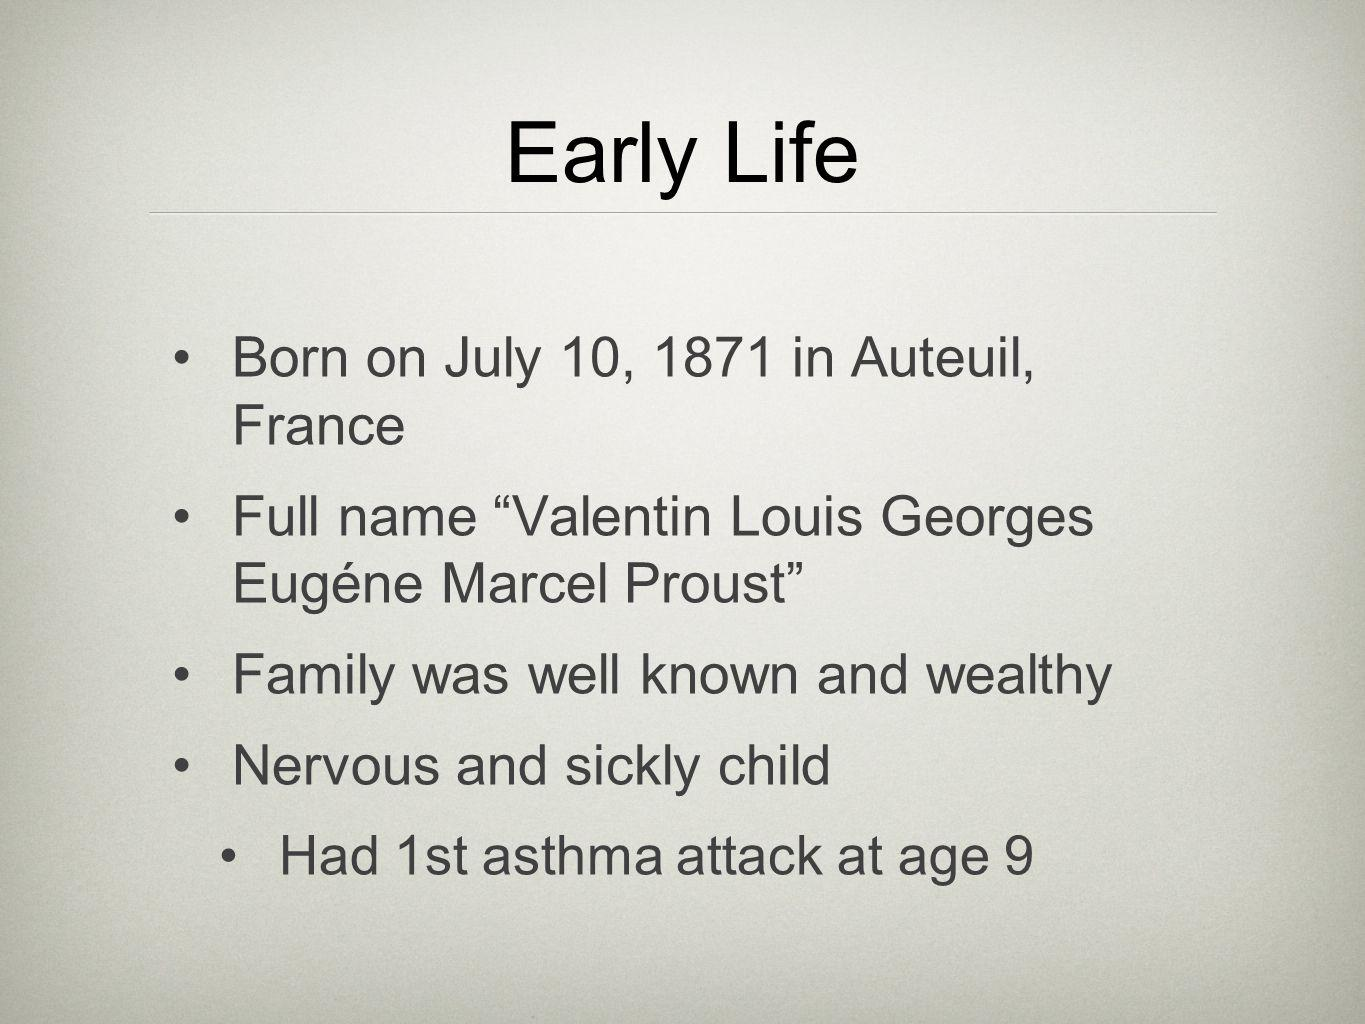 Early Life Born on July 10, 1871 in Auteuil, France Full name Valentin Louis Georges Eugéne Marcel Proust Family was well known and wealthy Nervous and sickly child Had 1st asthma attack at age 9